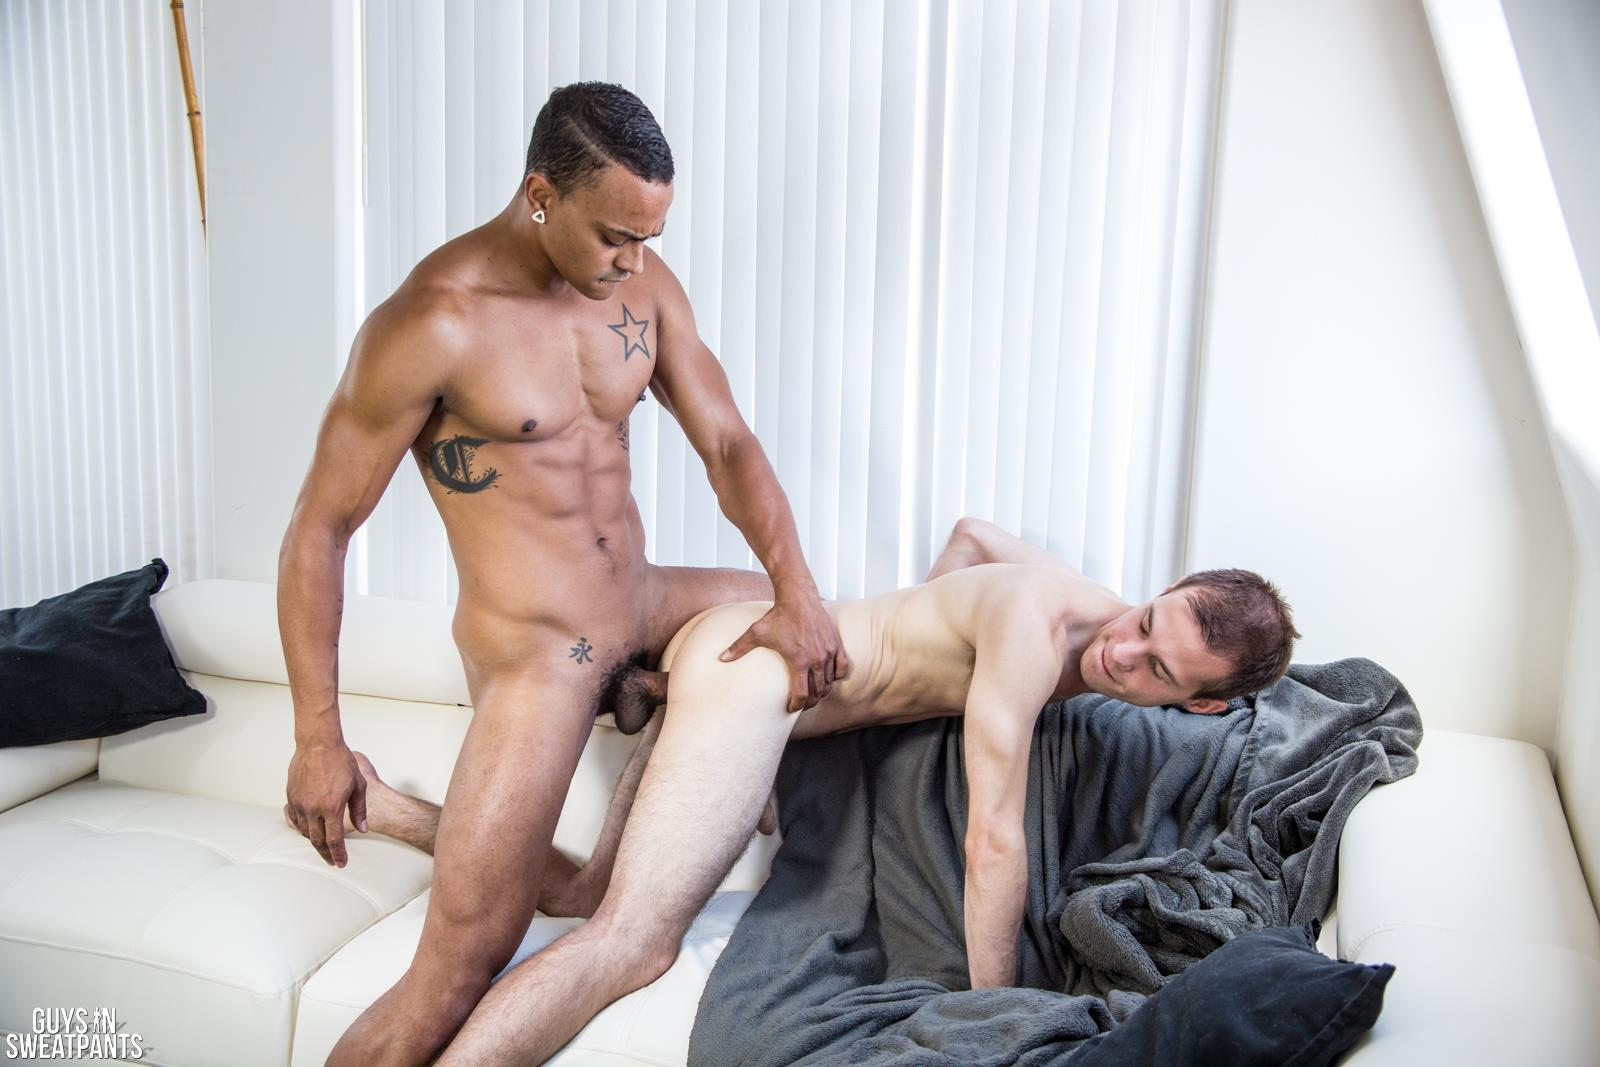 Guys In Sweat Pants Cameron Jakob and Dillon Hays Interracial Bareback Breeding Amateur Gay Porn 07 Versatile Hung Black Guy Fucks A White Boy With A Huge Uncut Cock